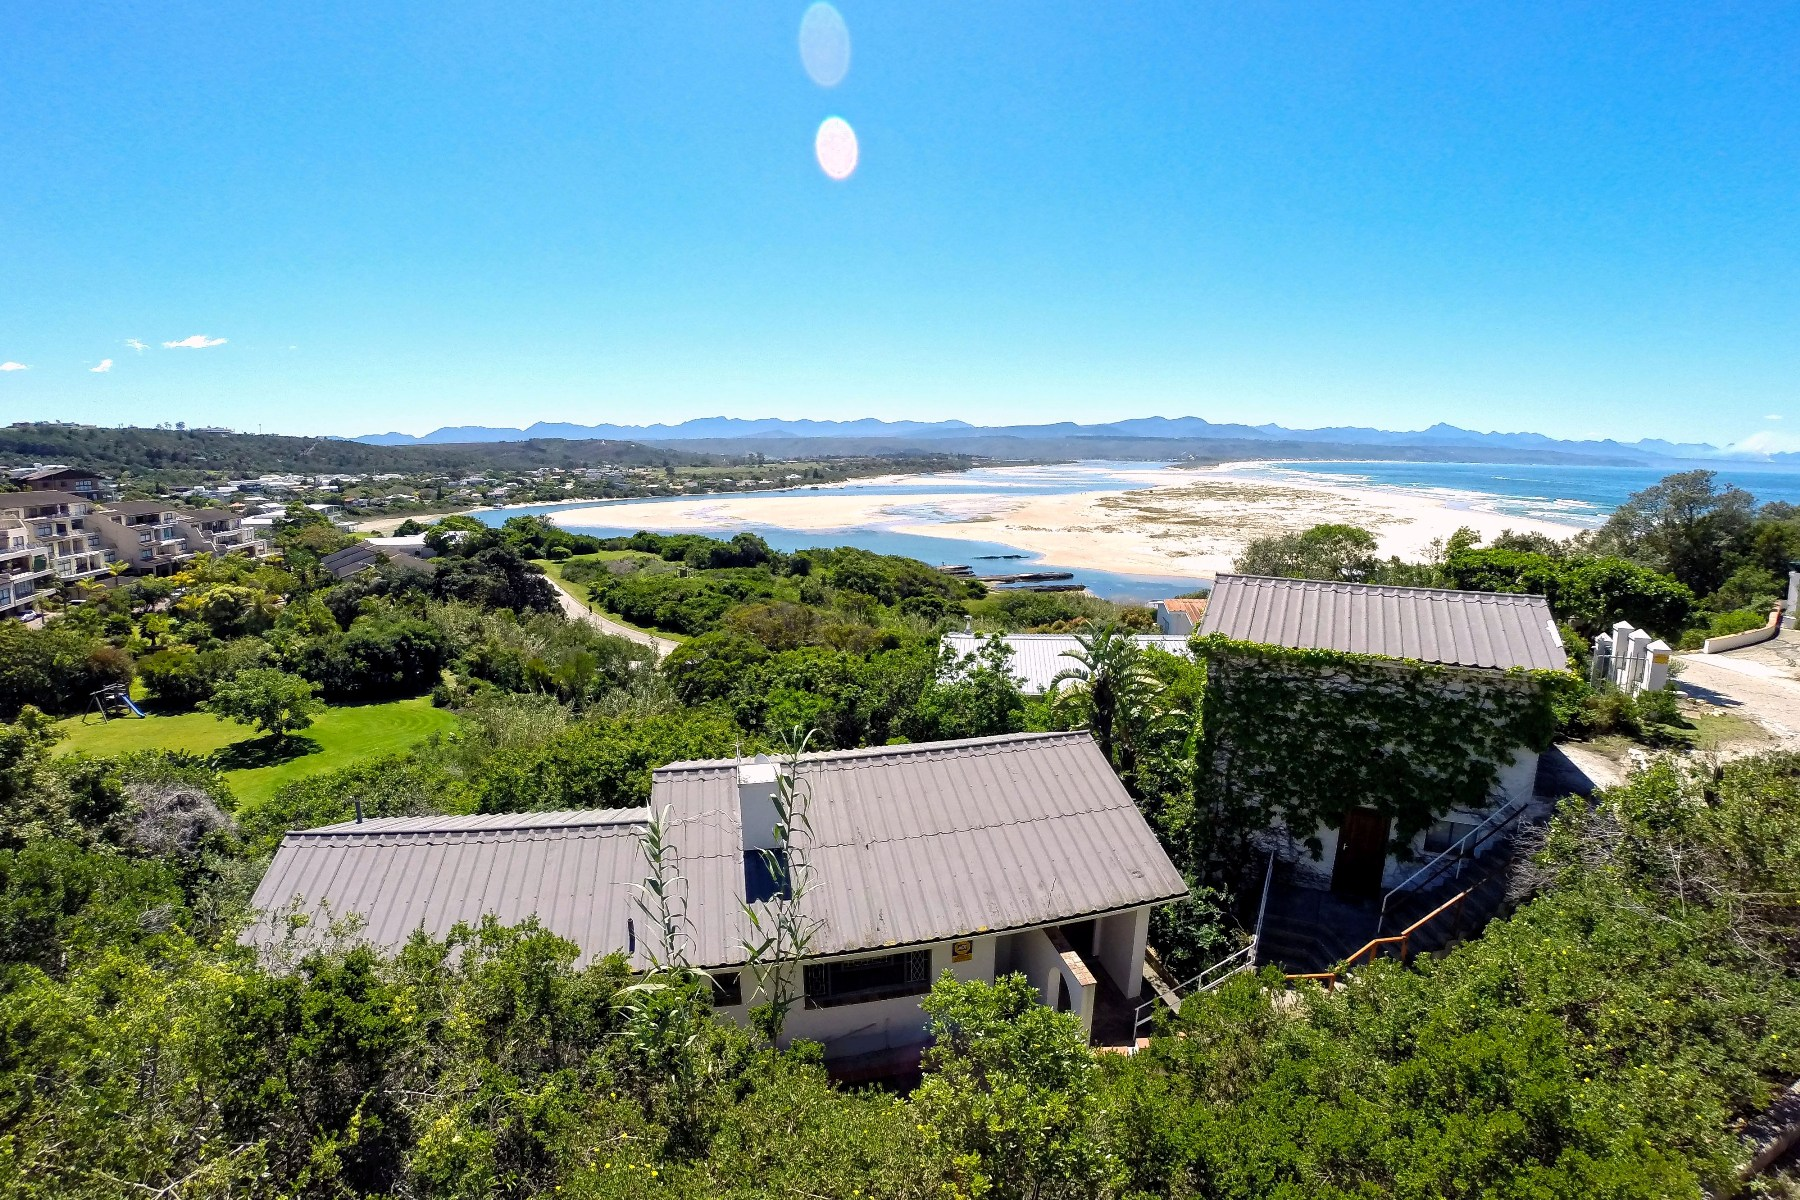 Single Family Home for Sale at Old Plett Home above Look Out Beach Plettenberg Bay, Western Cape, 6600 South Africa